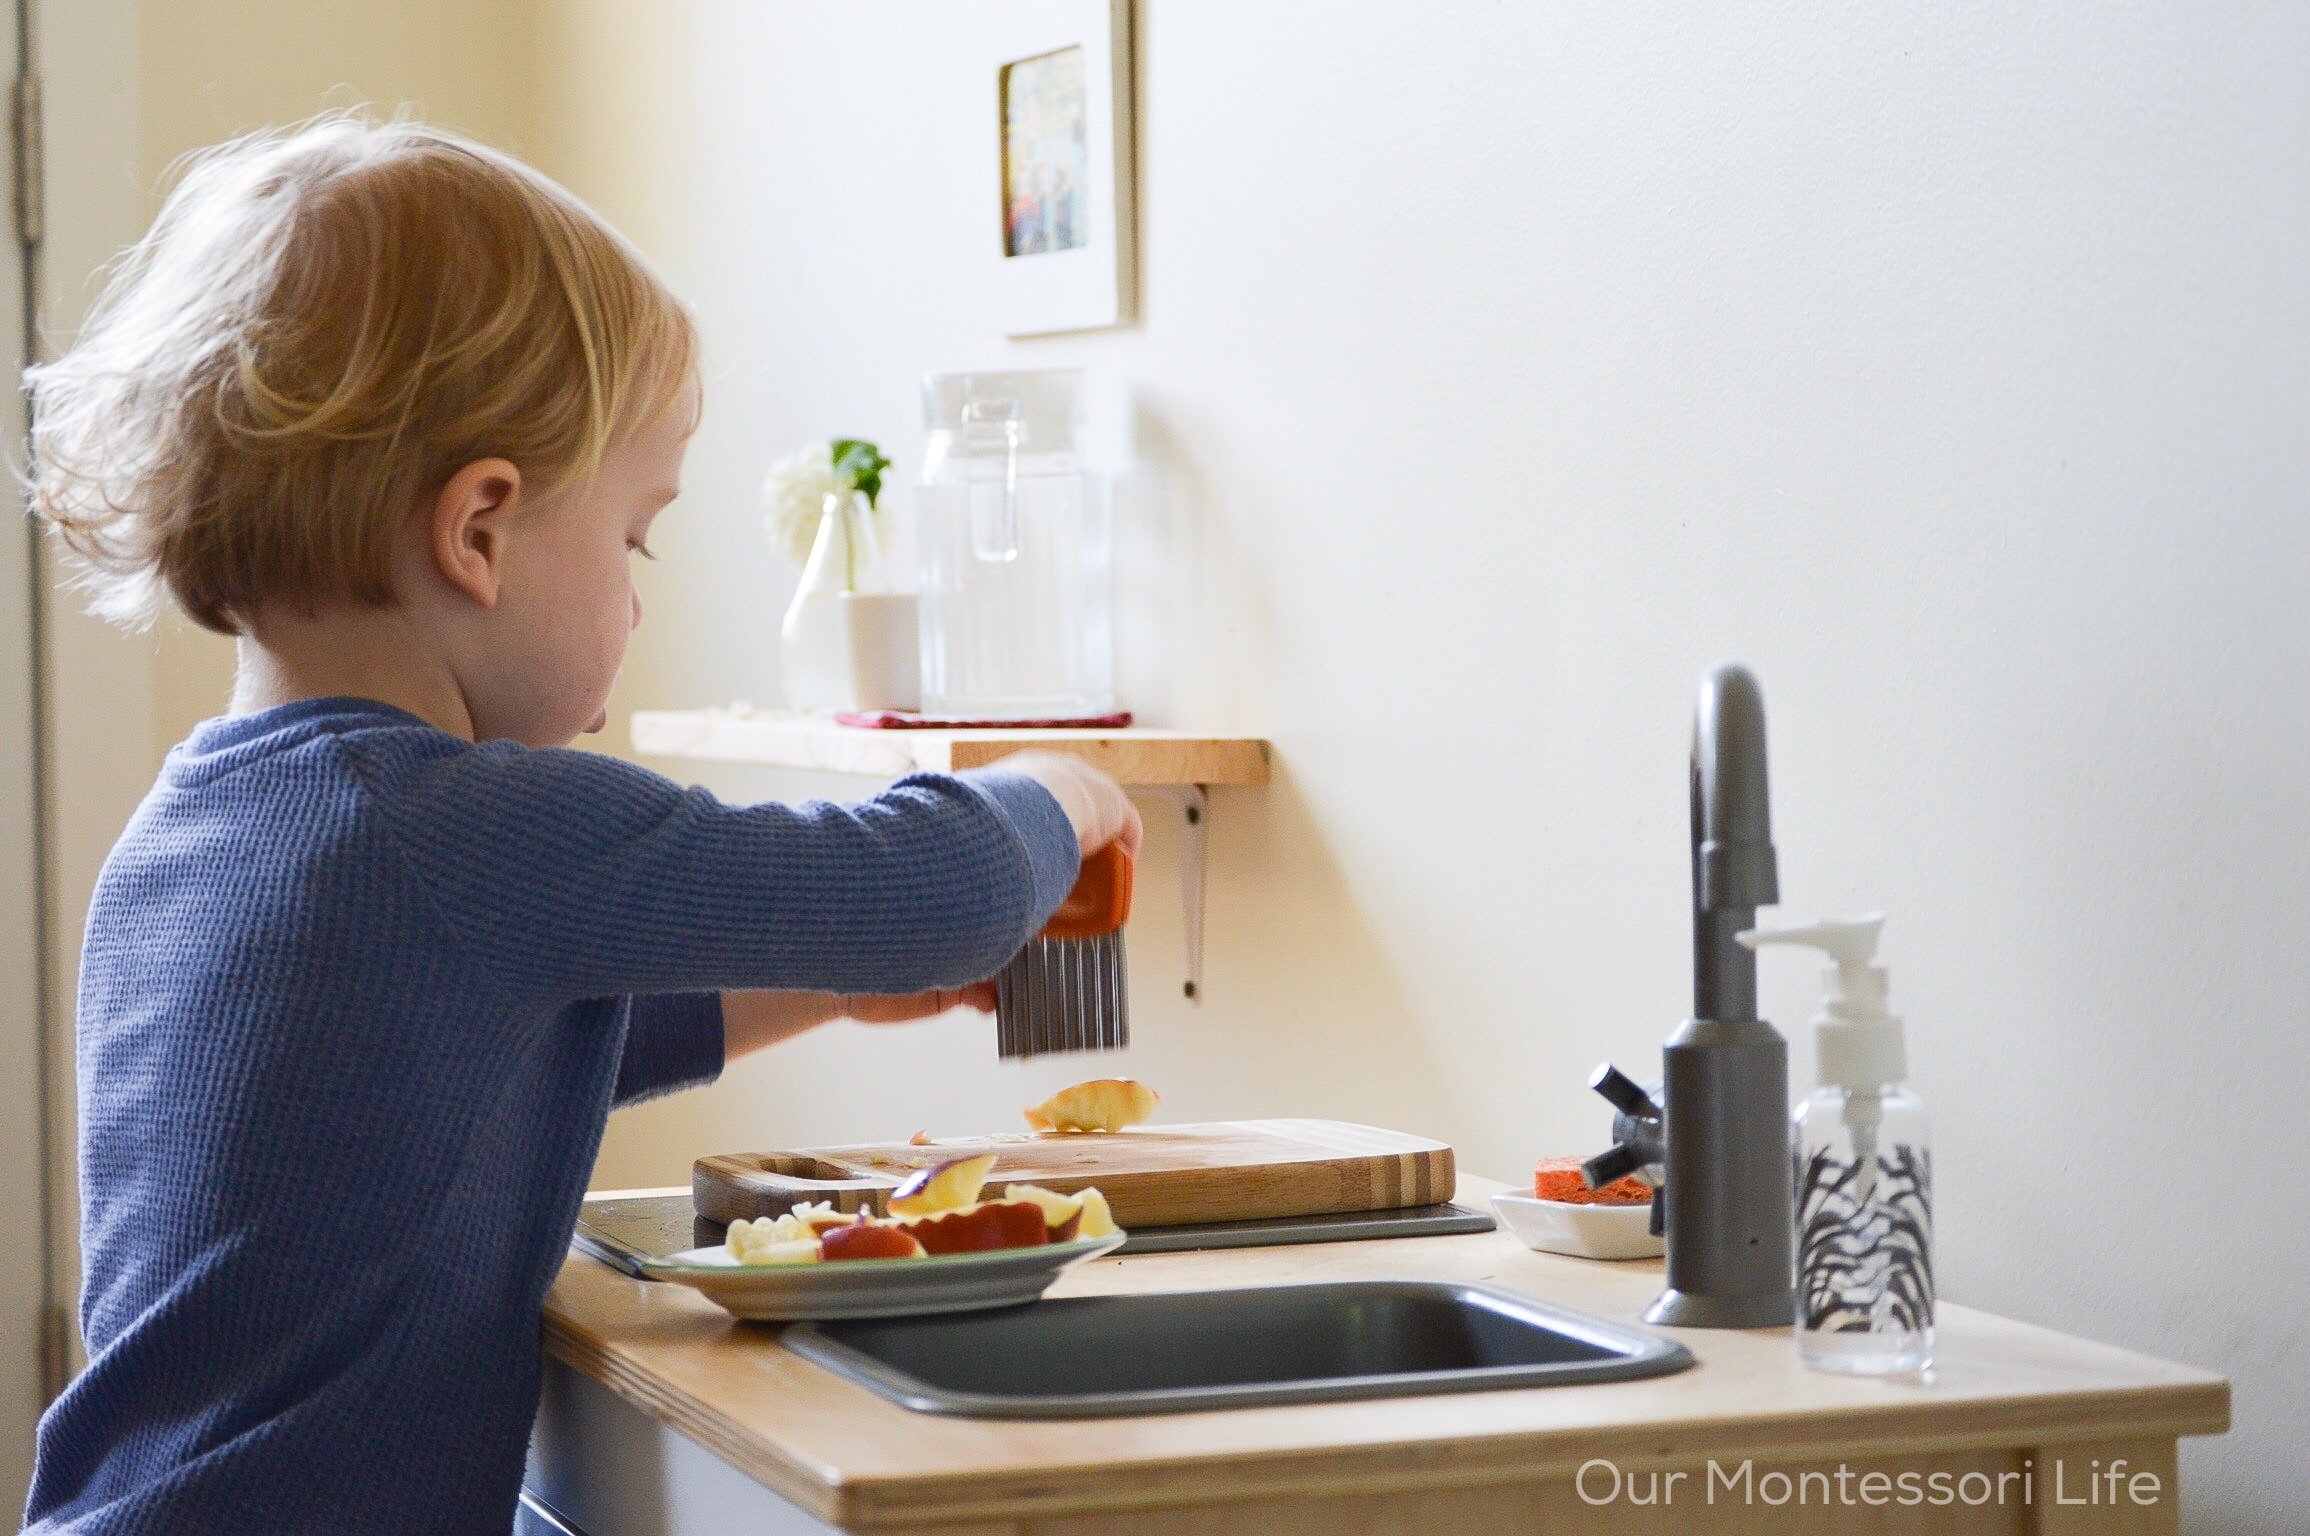 SUMMER SERIES: Montessori home tour #3 – a peek inside Our ...